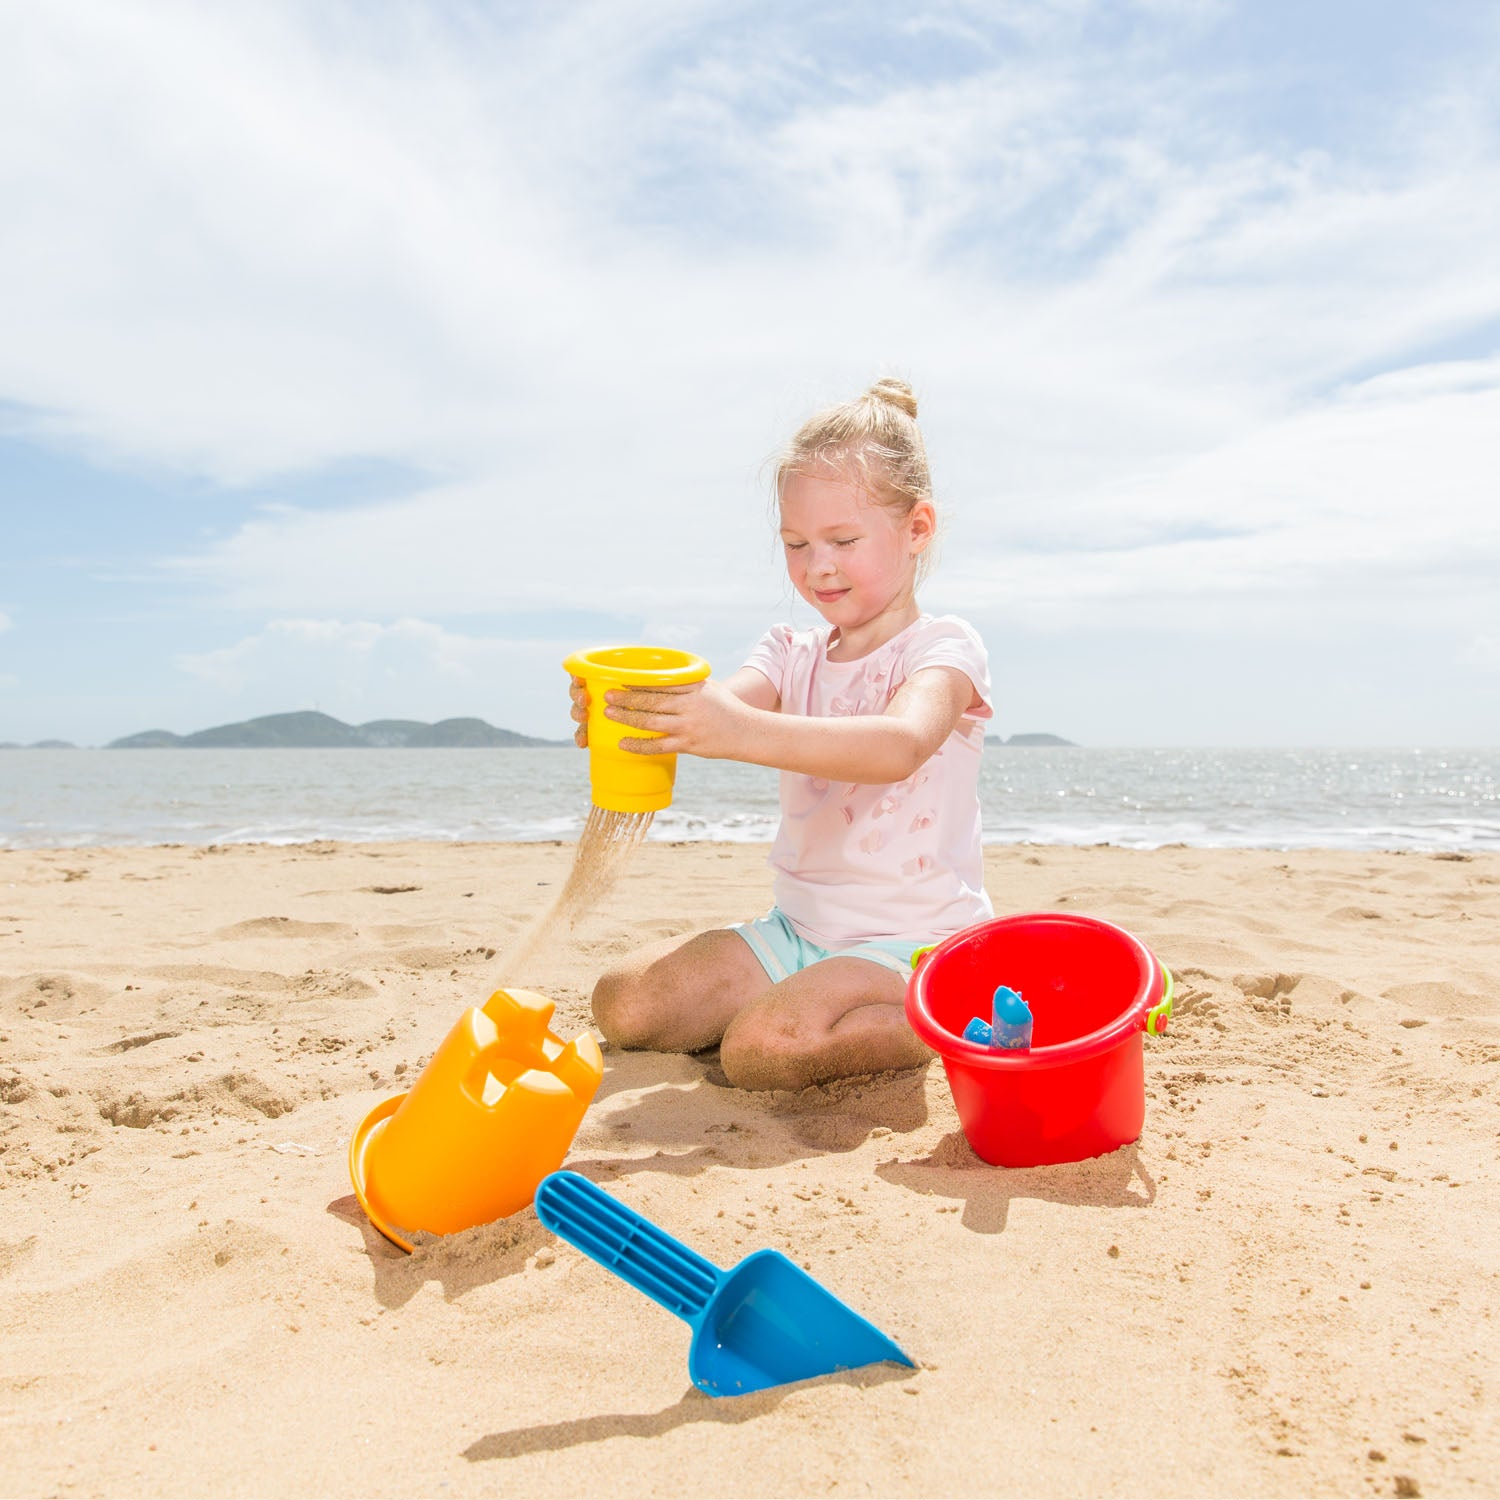 5-in-1 Beach Set